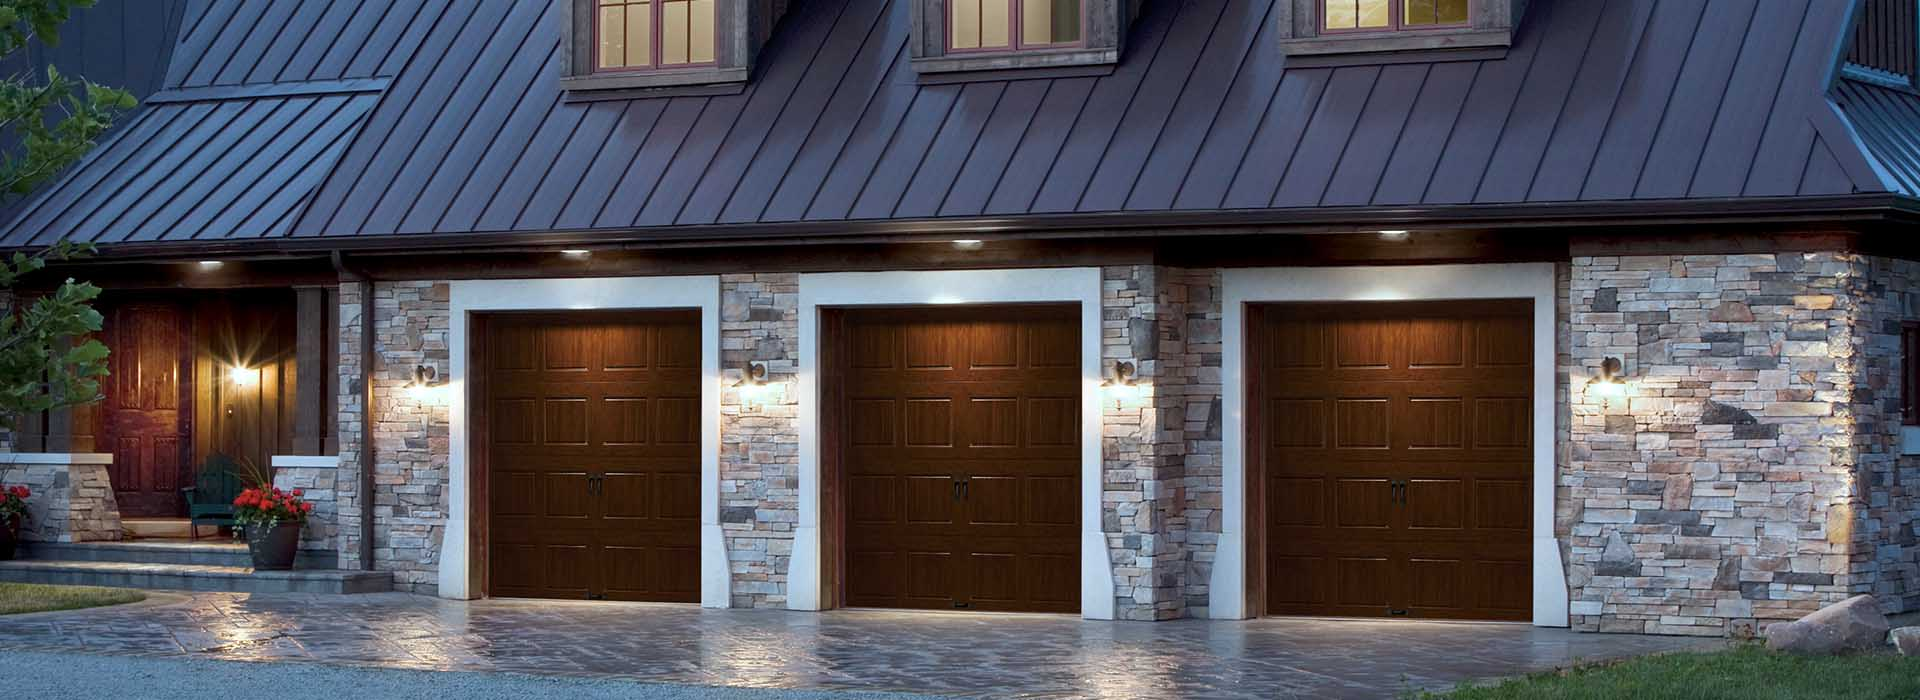 Superbe ... Garage Door Openers · Overhead Doors · Commercial · Residential ·  Products · Contact Us. Menu